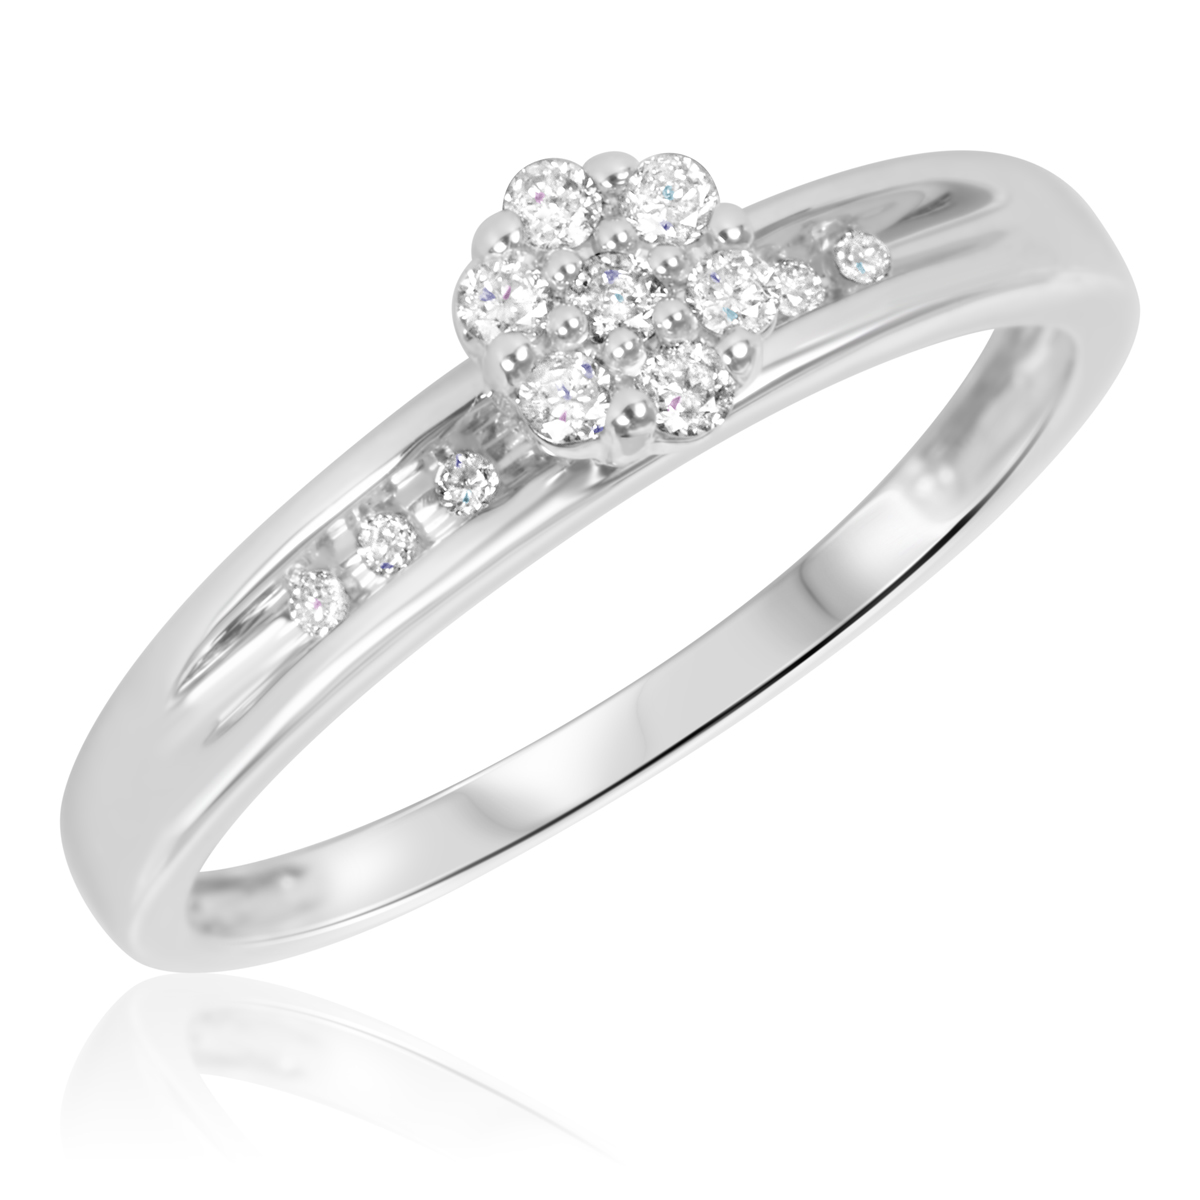 1/5 Carat T.W. Diamond Women's Bridal Wedding Ring Set 10K ...